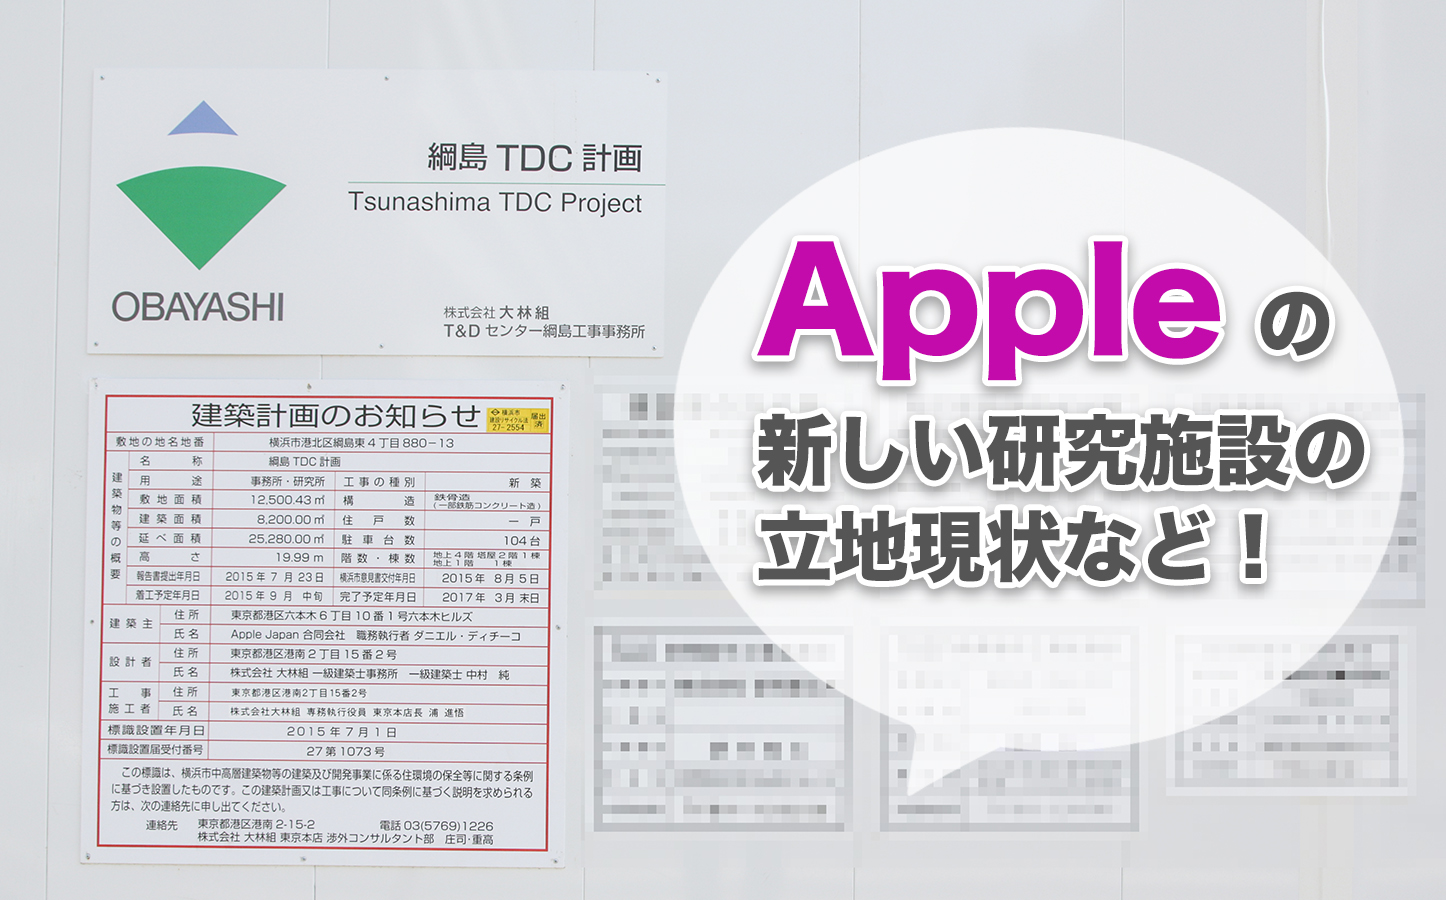 Apple Japan Tsunashima TDC Project